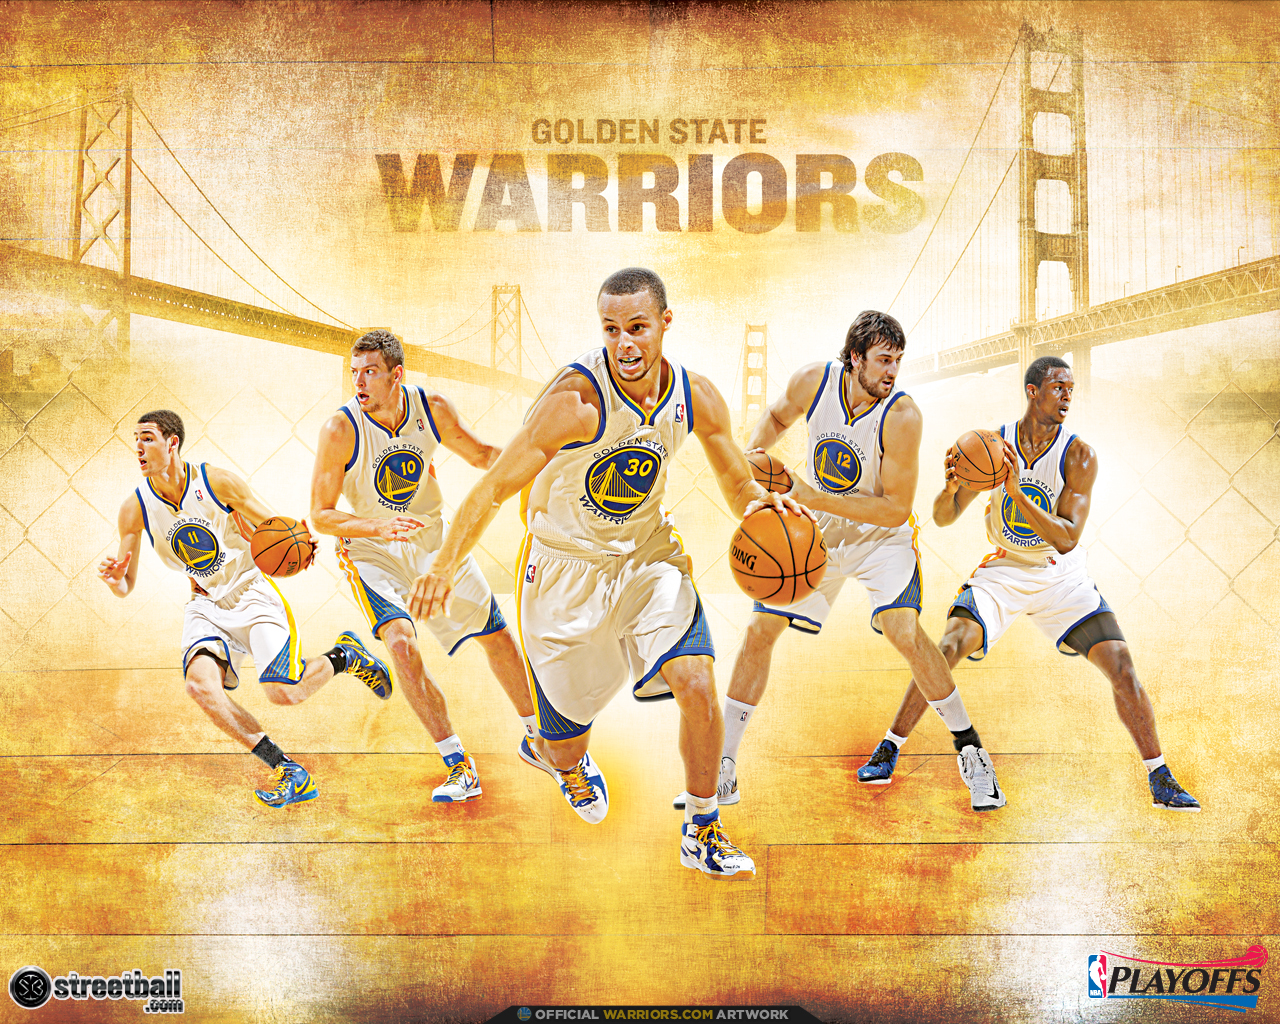 Nba Playoffs Golden State Warriors Wallpaper Golden State Warriors Golden State Warriors Wallpaper Nba Golden State Warriors